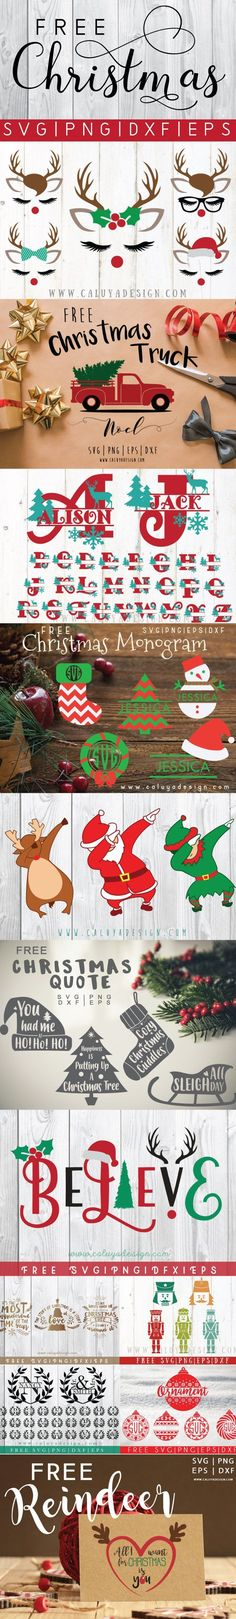 Free Christmas SVG files for Cricut projects Cricut Free Christmas SVG files for Cricut projects. Noel Christmas, Christmas Projects, All Things Christmas, Holiday Crafts, Holiday Fun, Xmas, Christmas Letters, Christmas Vinyl, Spring Crafts